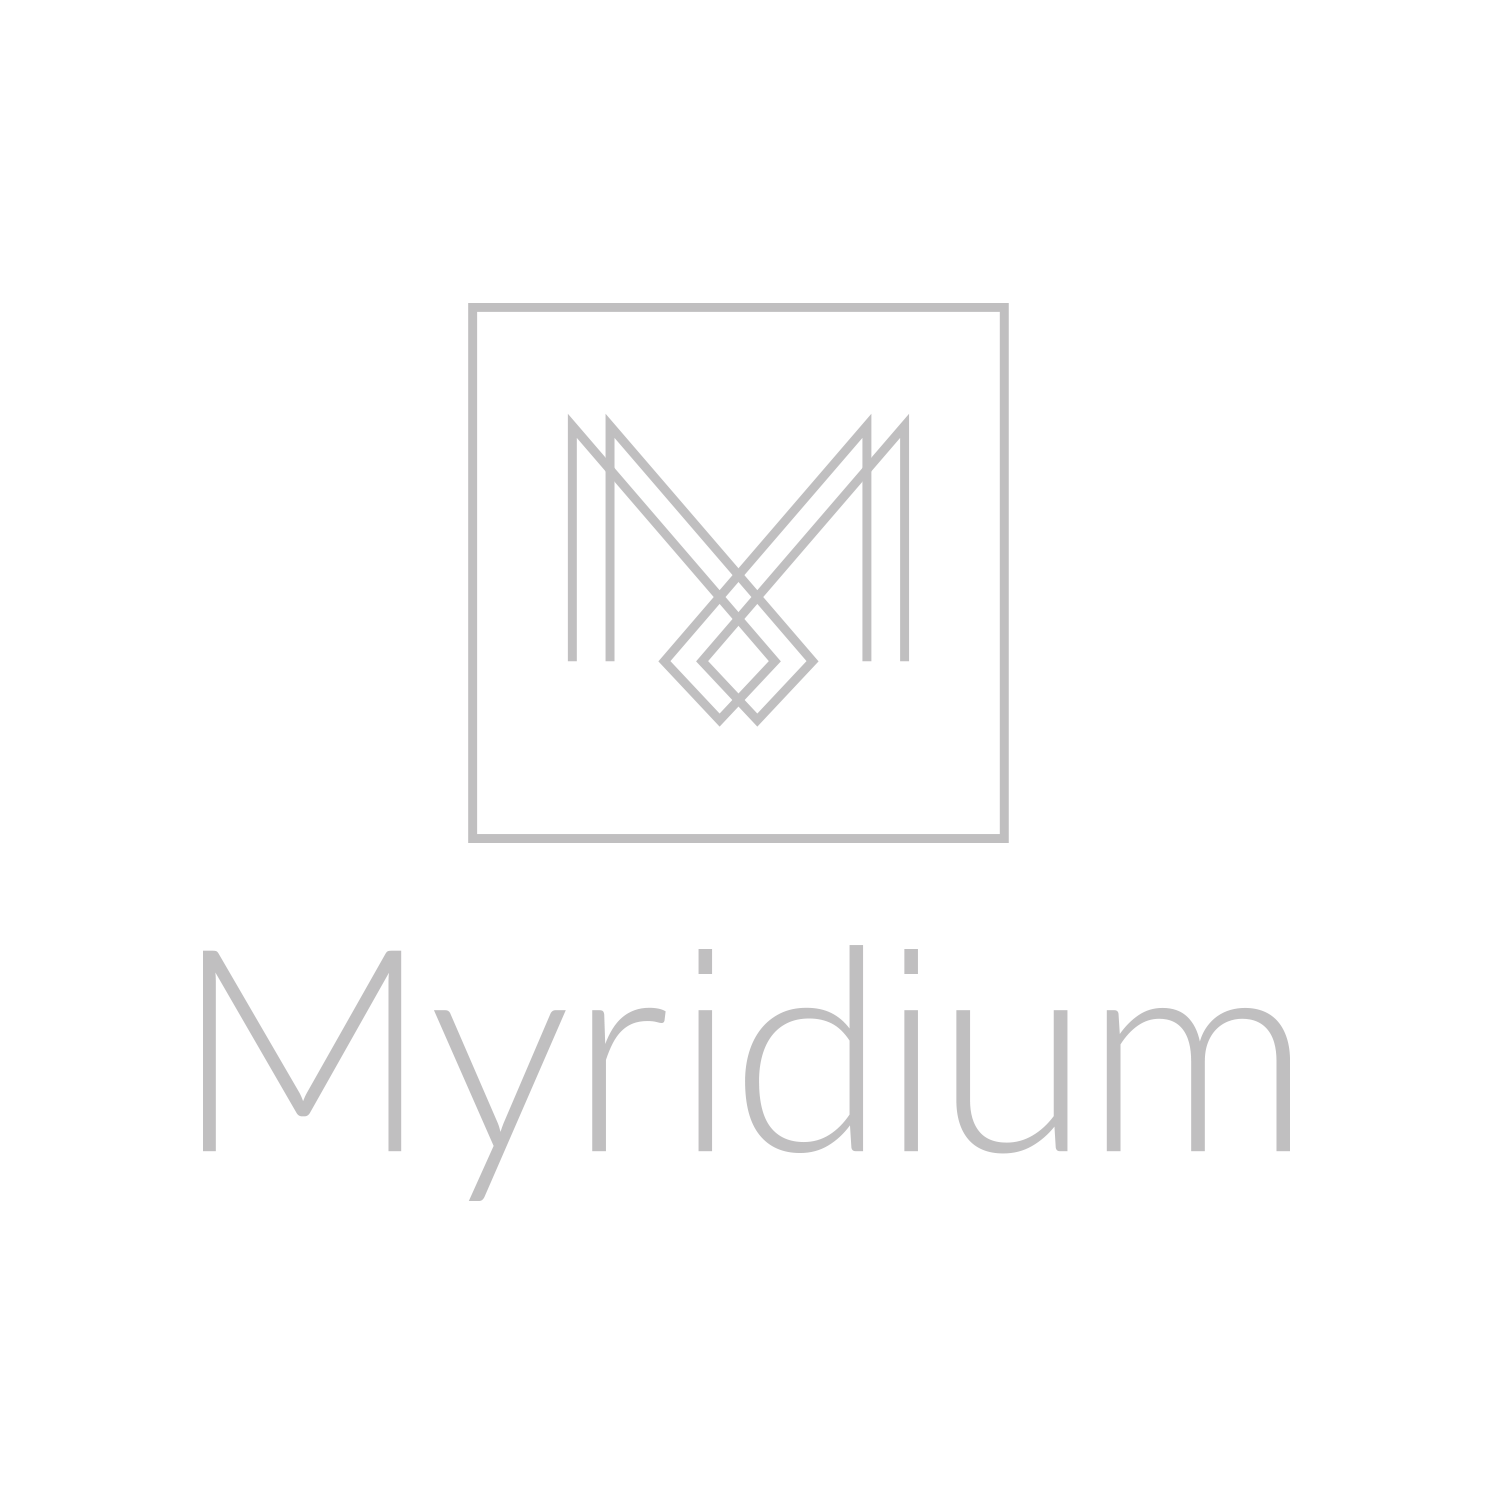 Myridium Logo Design - Fort Collins, CO Luxury Apartments